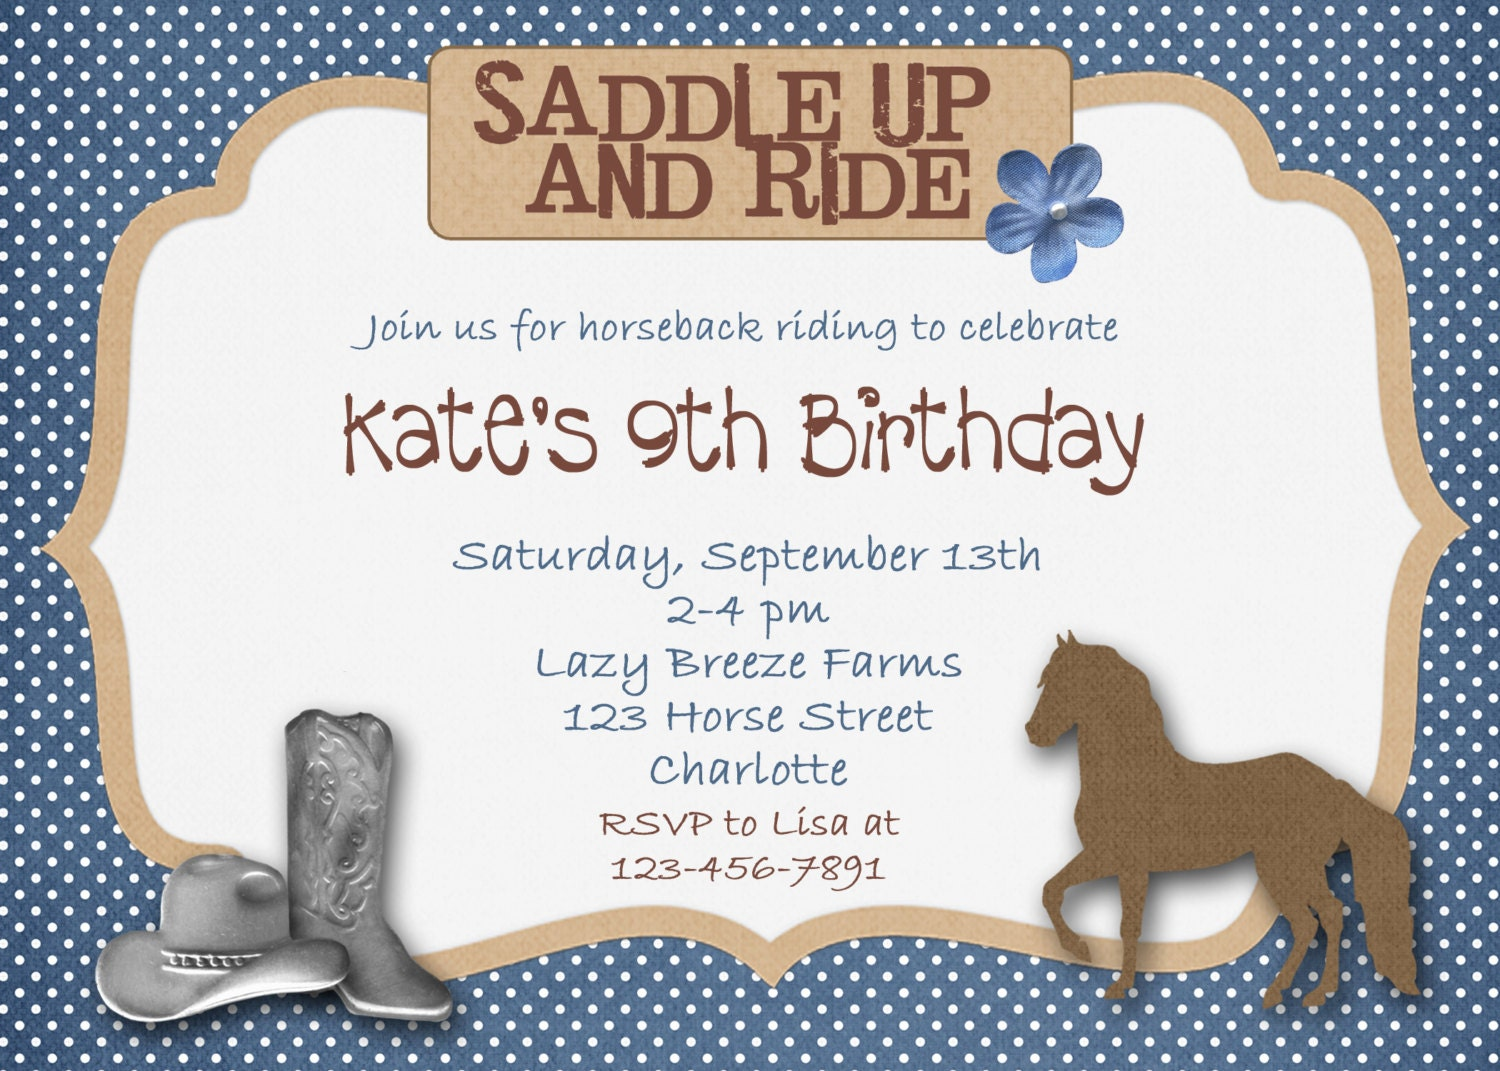 Print My Own Invitations Free with nice invitations template